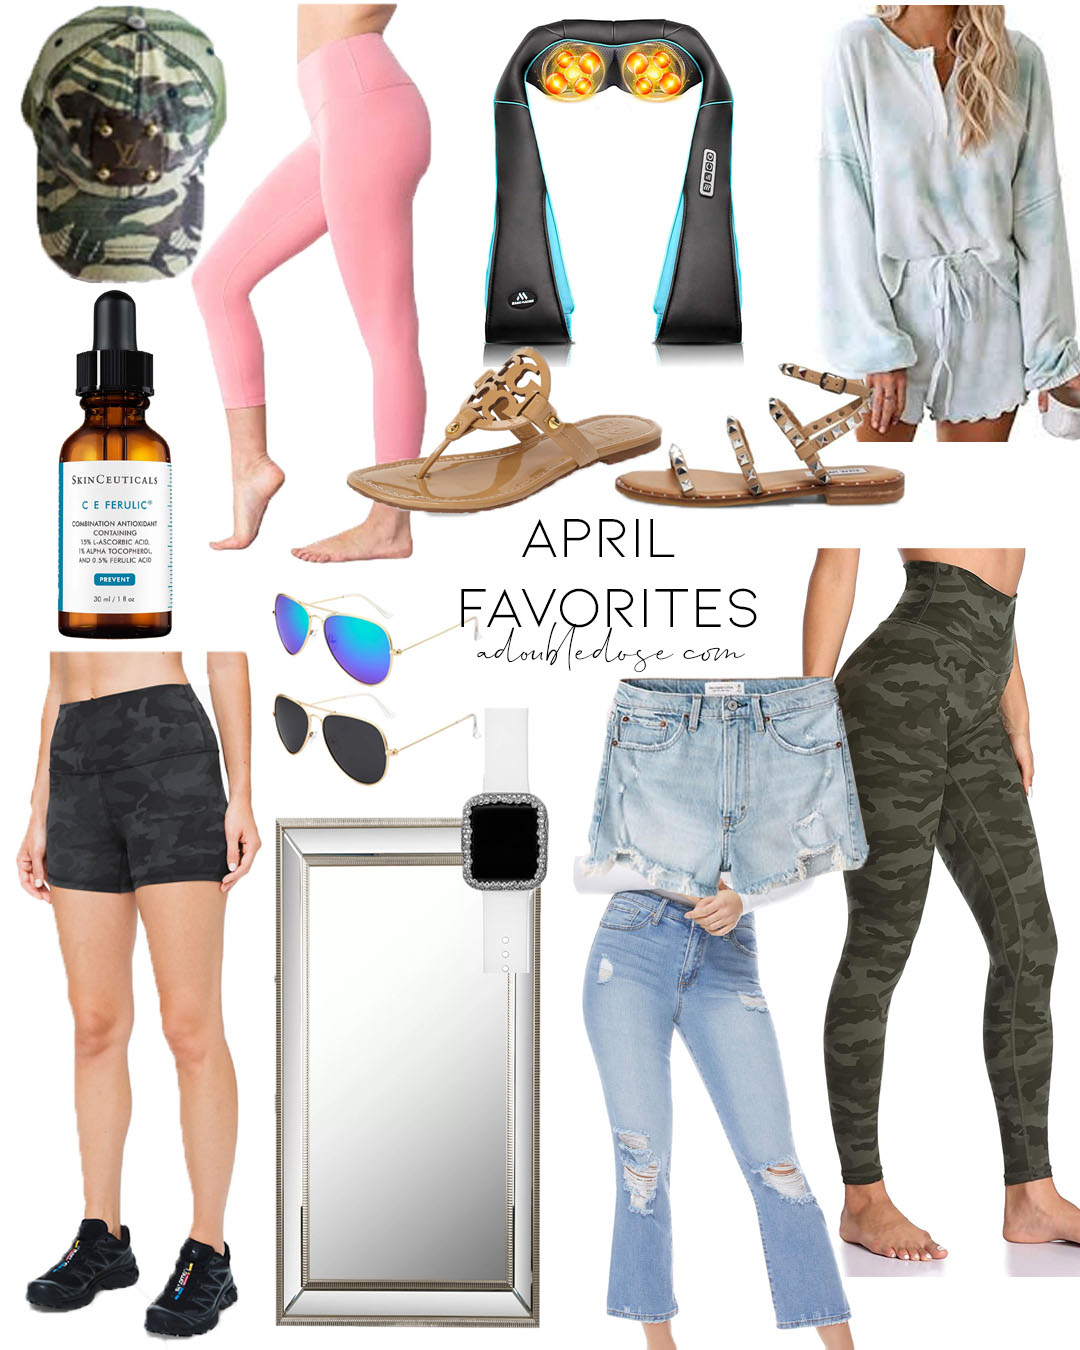 lifestyle and fashion blogger alexis belbel sharing her april favorites including amazon lulu dupe leggings, lululemon align bike shorts, full length mirror, camo leggings, studded sandals from steve madden and more | adoubledose.com